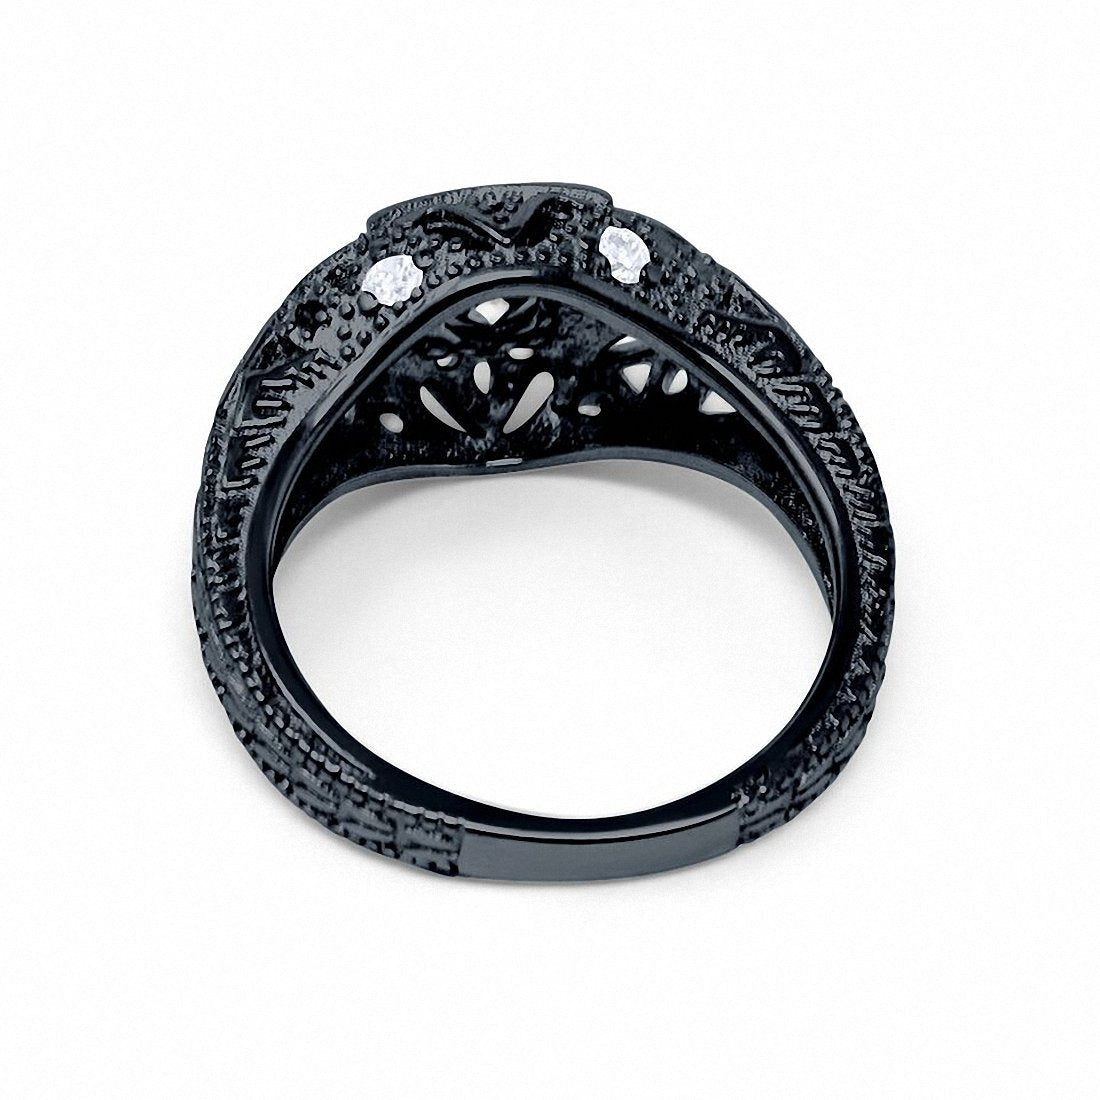 Antique Style Wedding Ring Round Black Tone, Simulated CZ 925 Sterling Silver